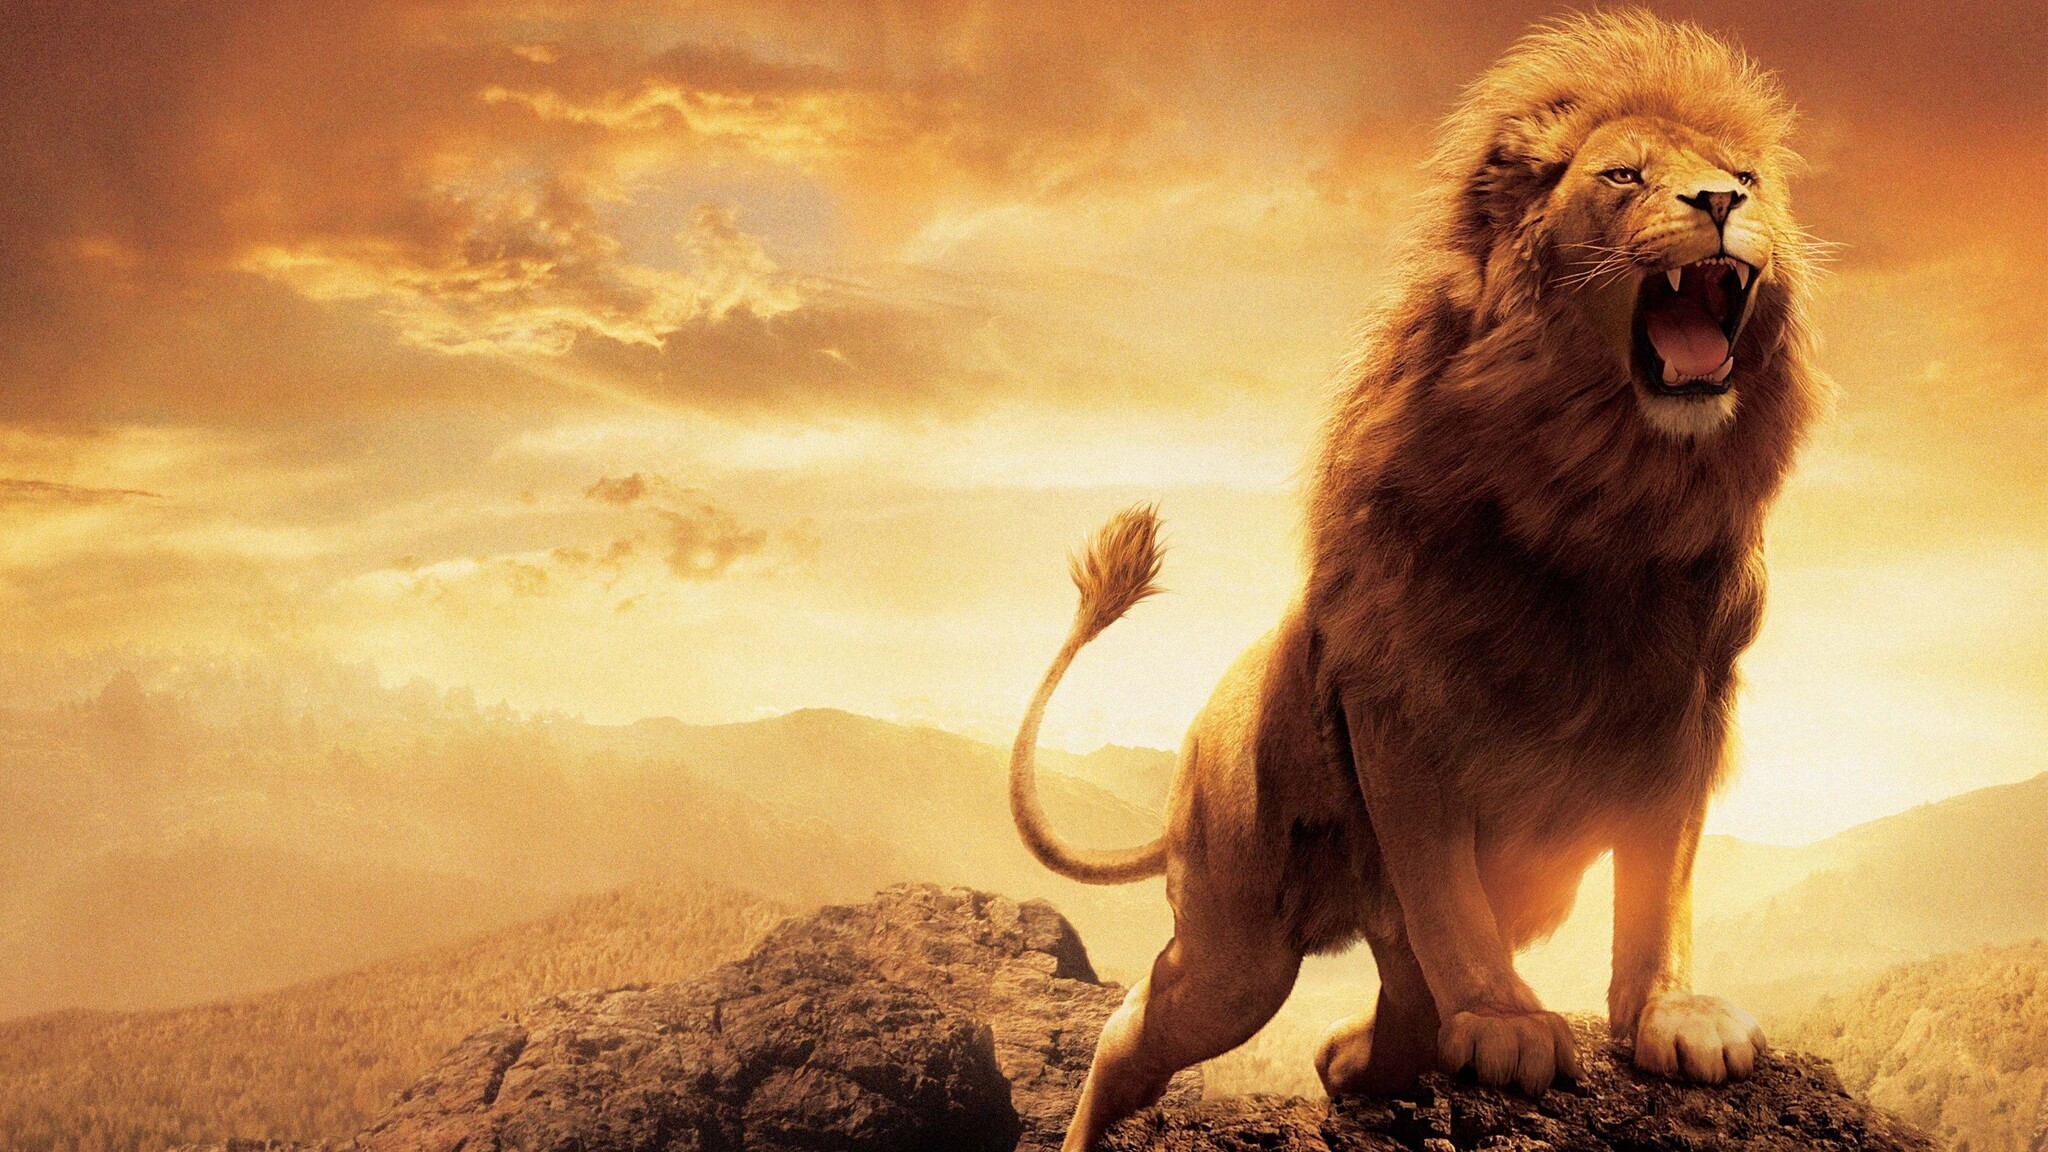 2048x1152 Narnia Lion 2048x1152 Resolution Hd 4k Wallpapers Images